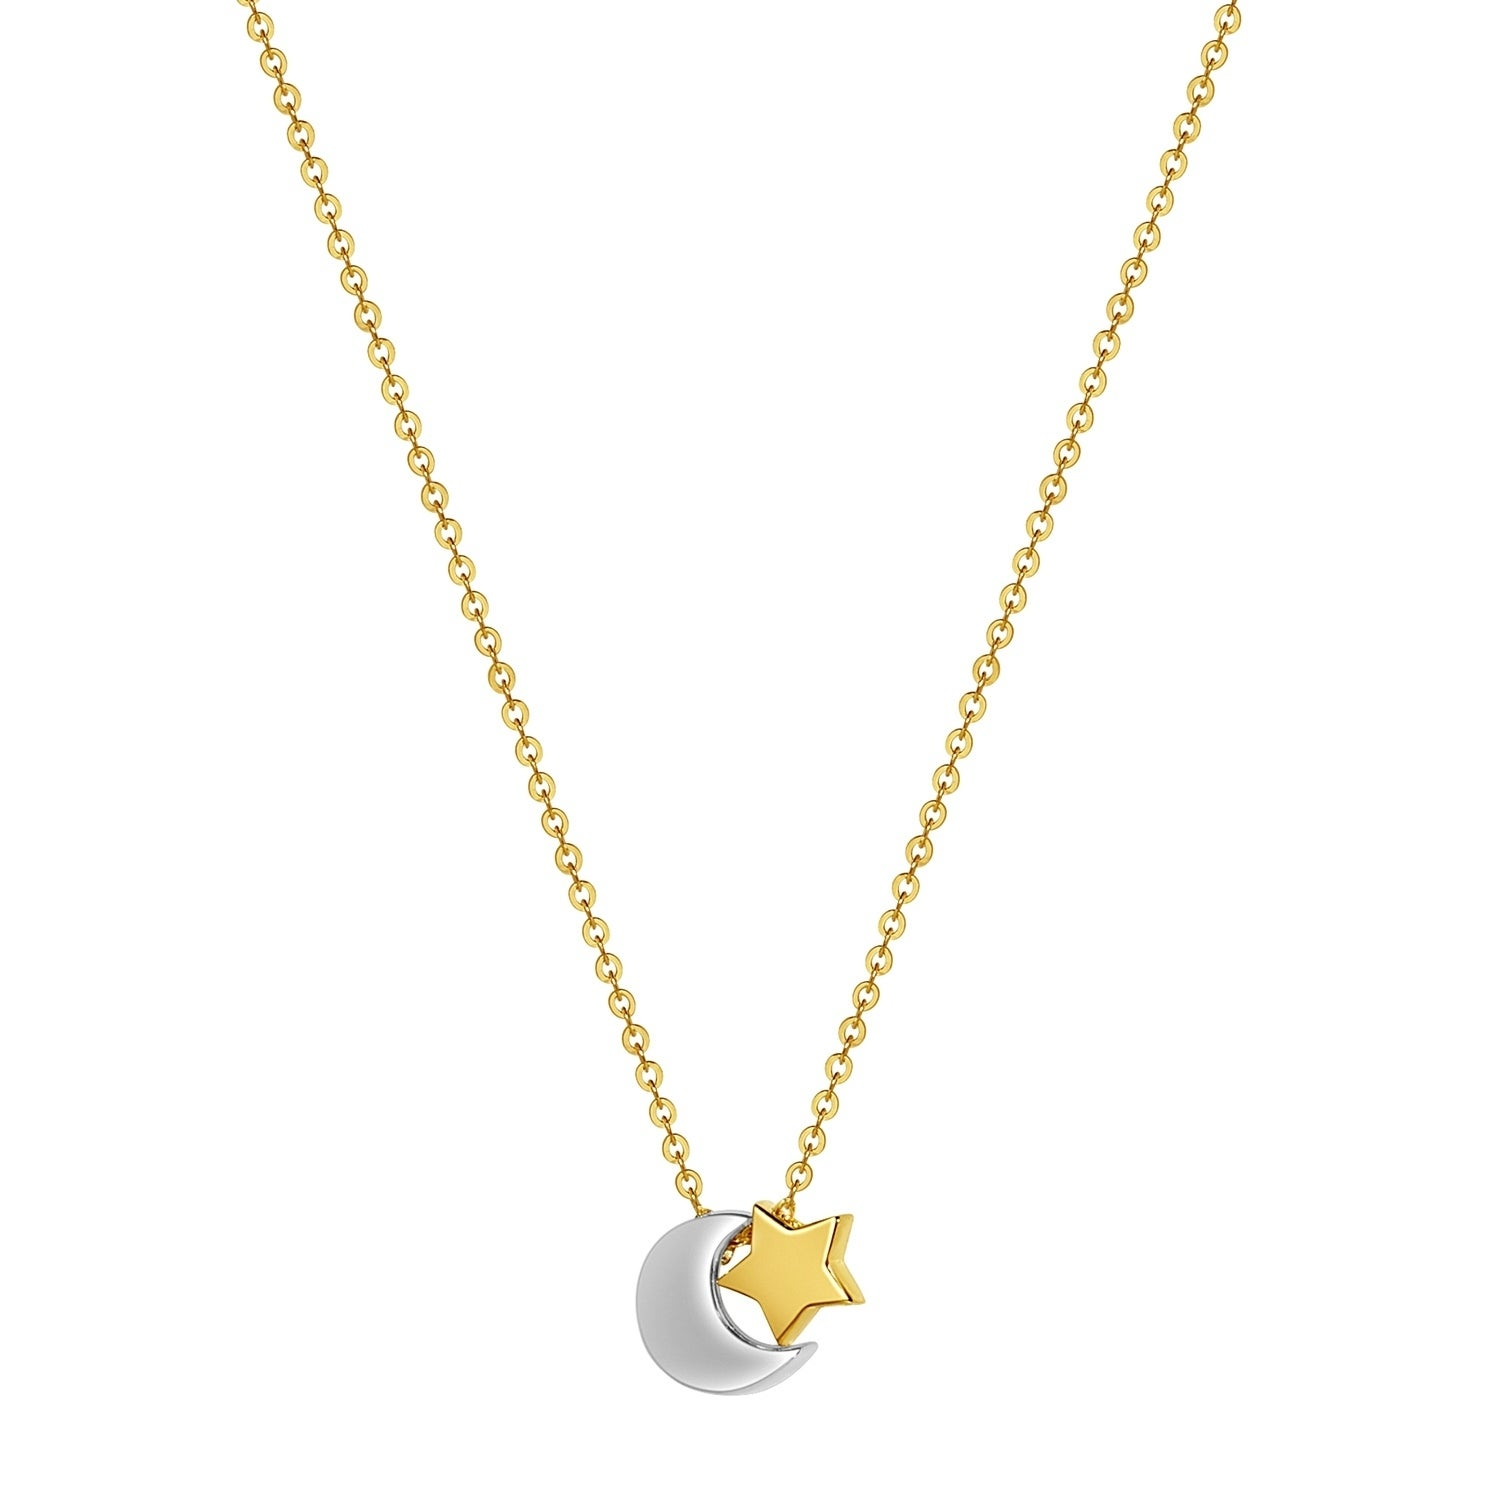 14K Yellow Gold Moon /& Star Charm Pendant For Necklace or Chain